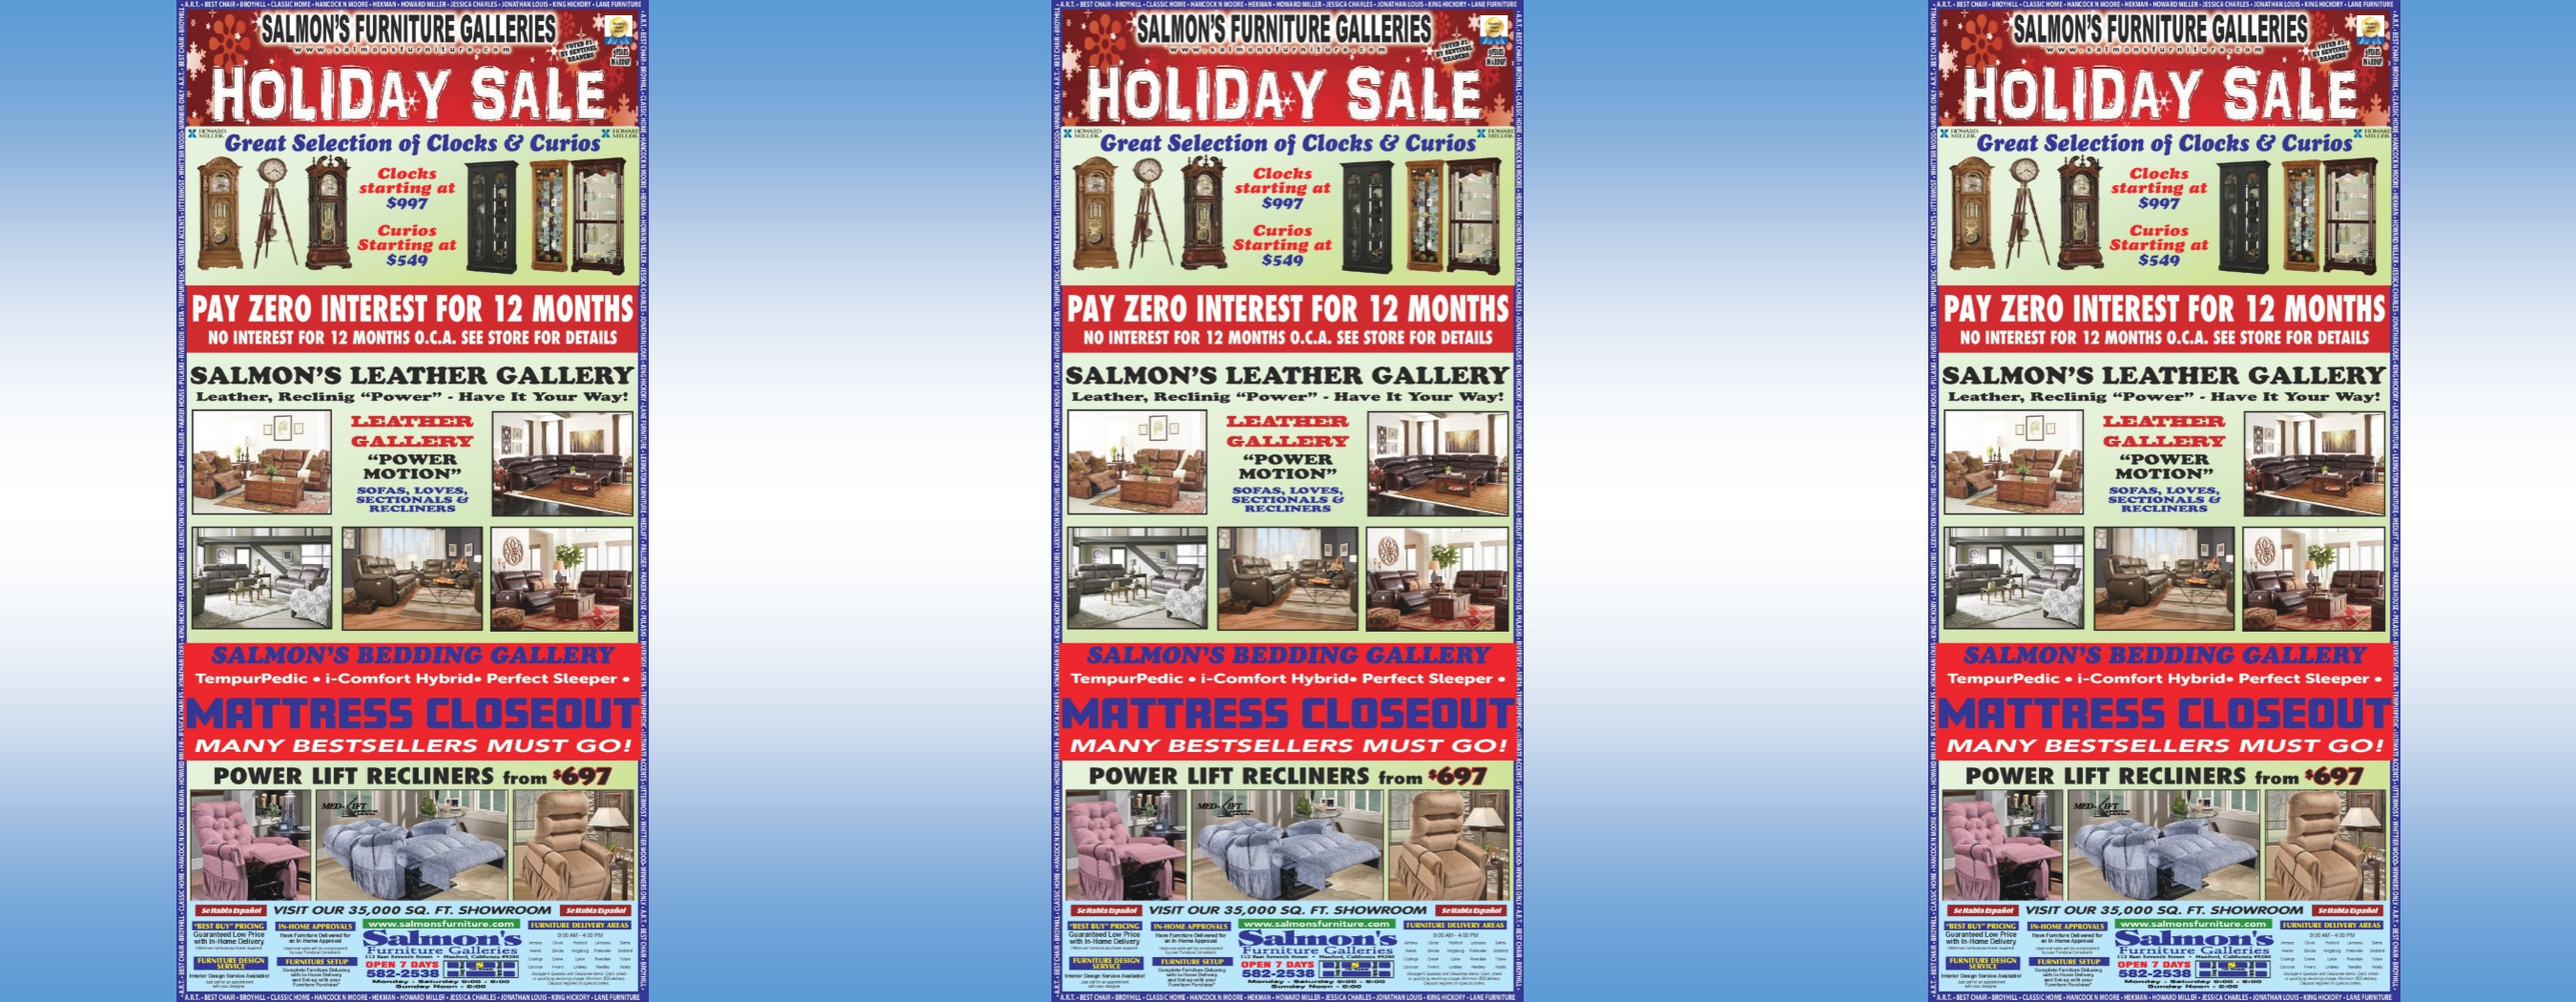 Holiday Newspaper AD 2018